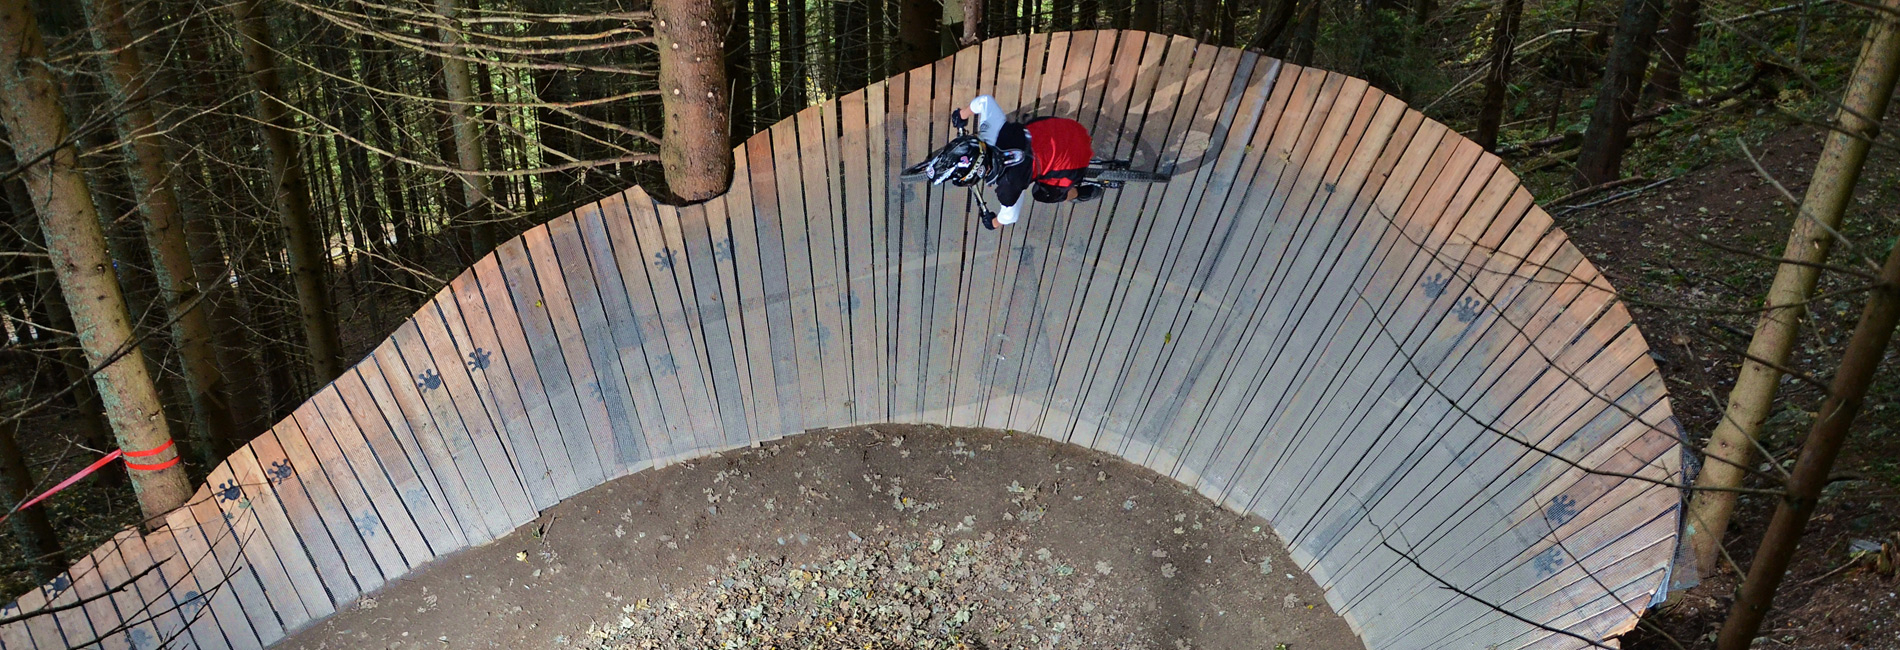 Wallride im Bikepark Semmering - Bikeaction pur - copyright Wiedhofer Philipp